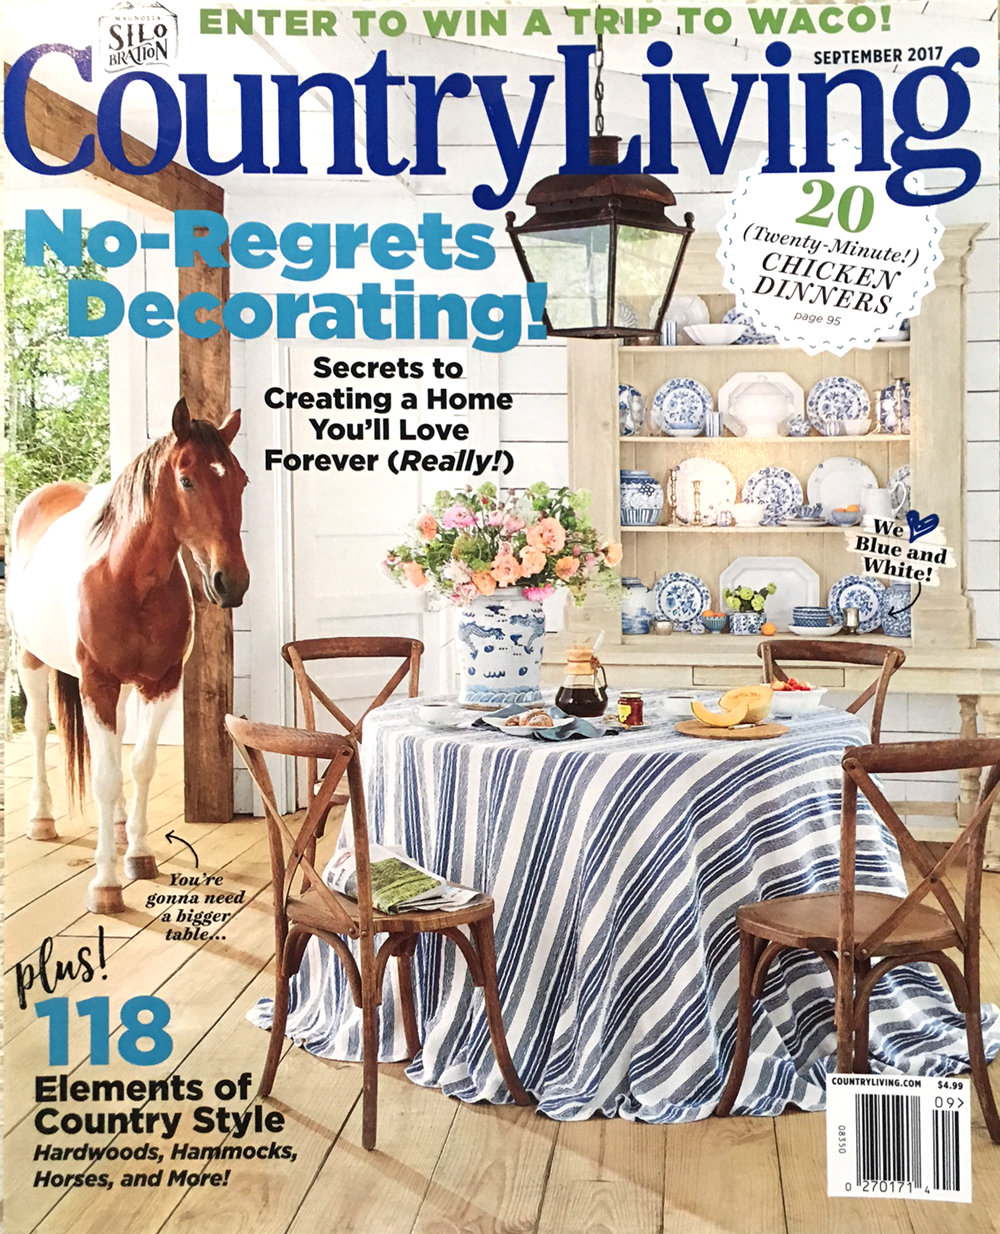 Country Living's September 2017 edition features City Farmhouse Style written by Kim Leggett